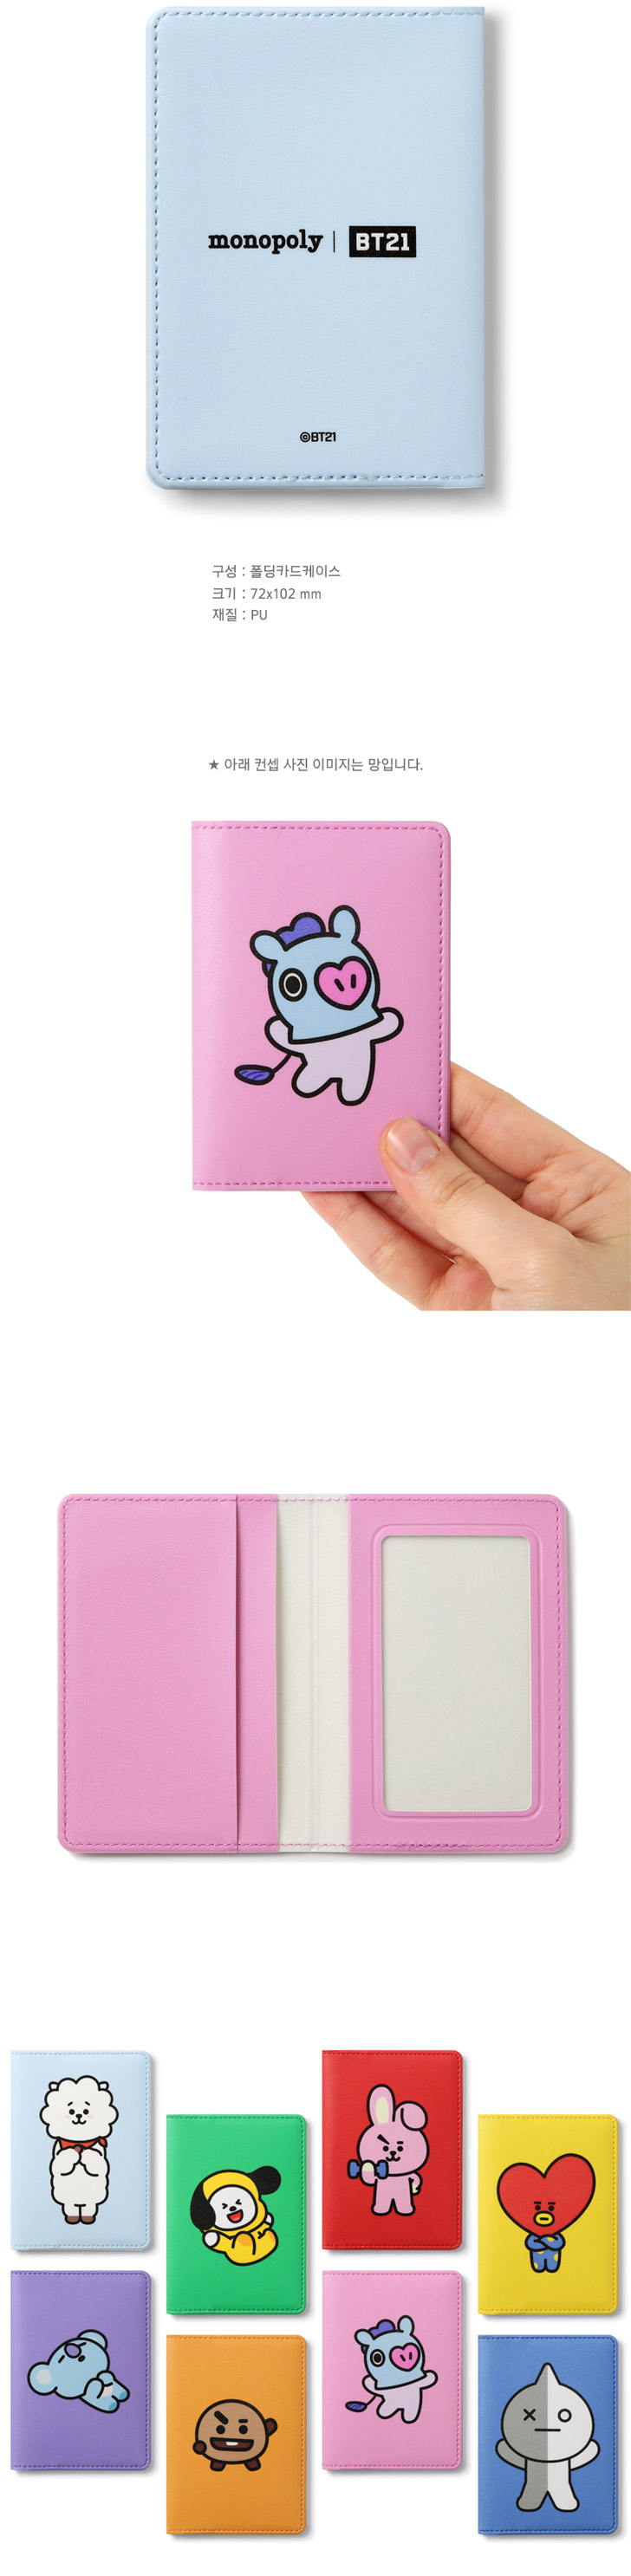 new styles 8a8ff 687f7 [BT21] BTS Monopoly Collaboration Goods - Folding Card Case